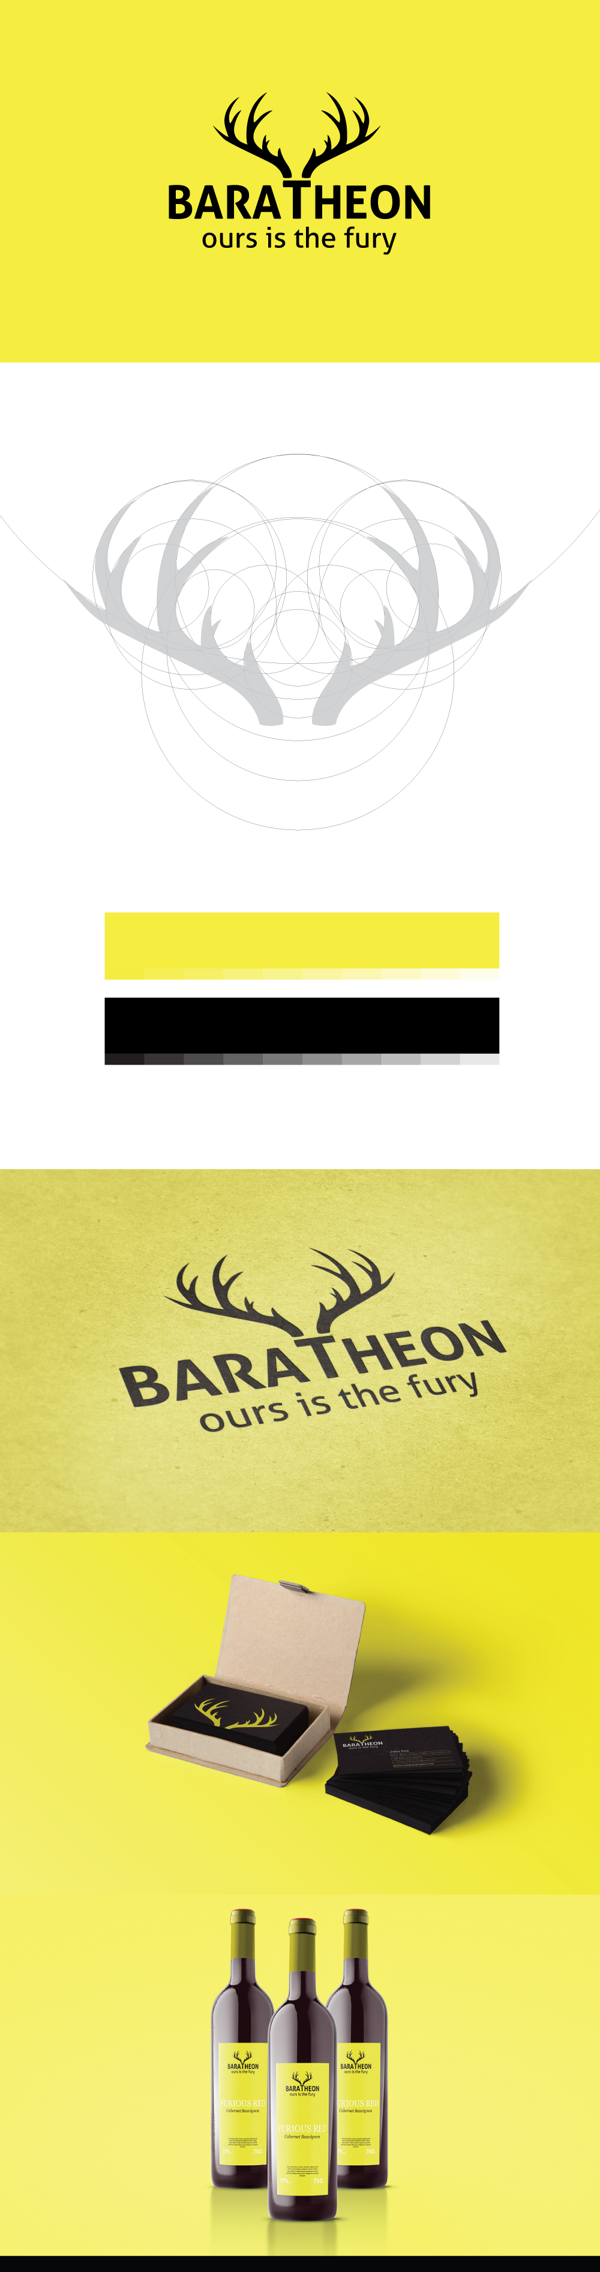 baratheon-got-sbh-le-news